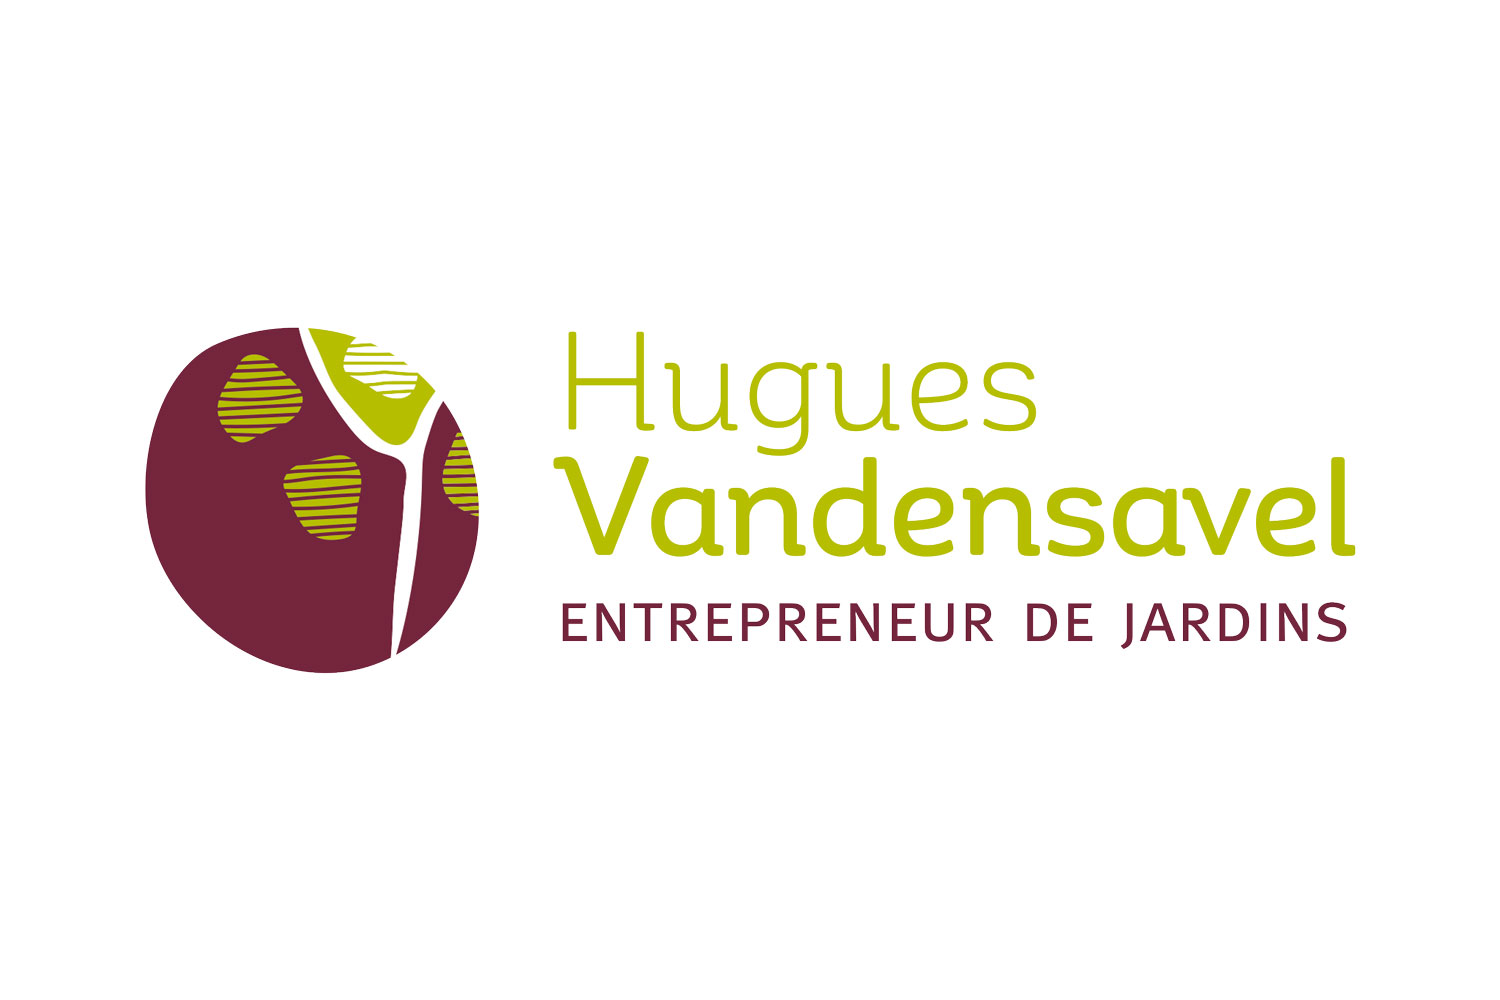 2_crabgraphic_logo_Hugues_Vandensavel